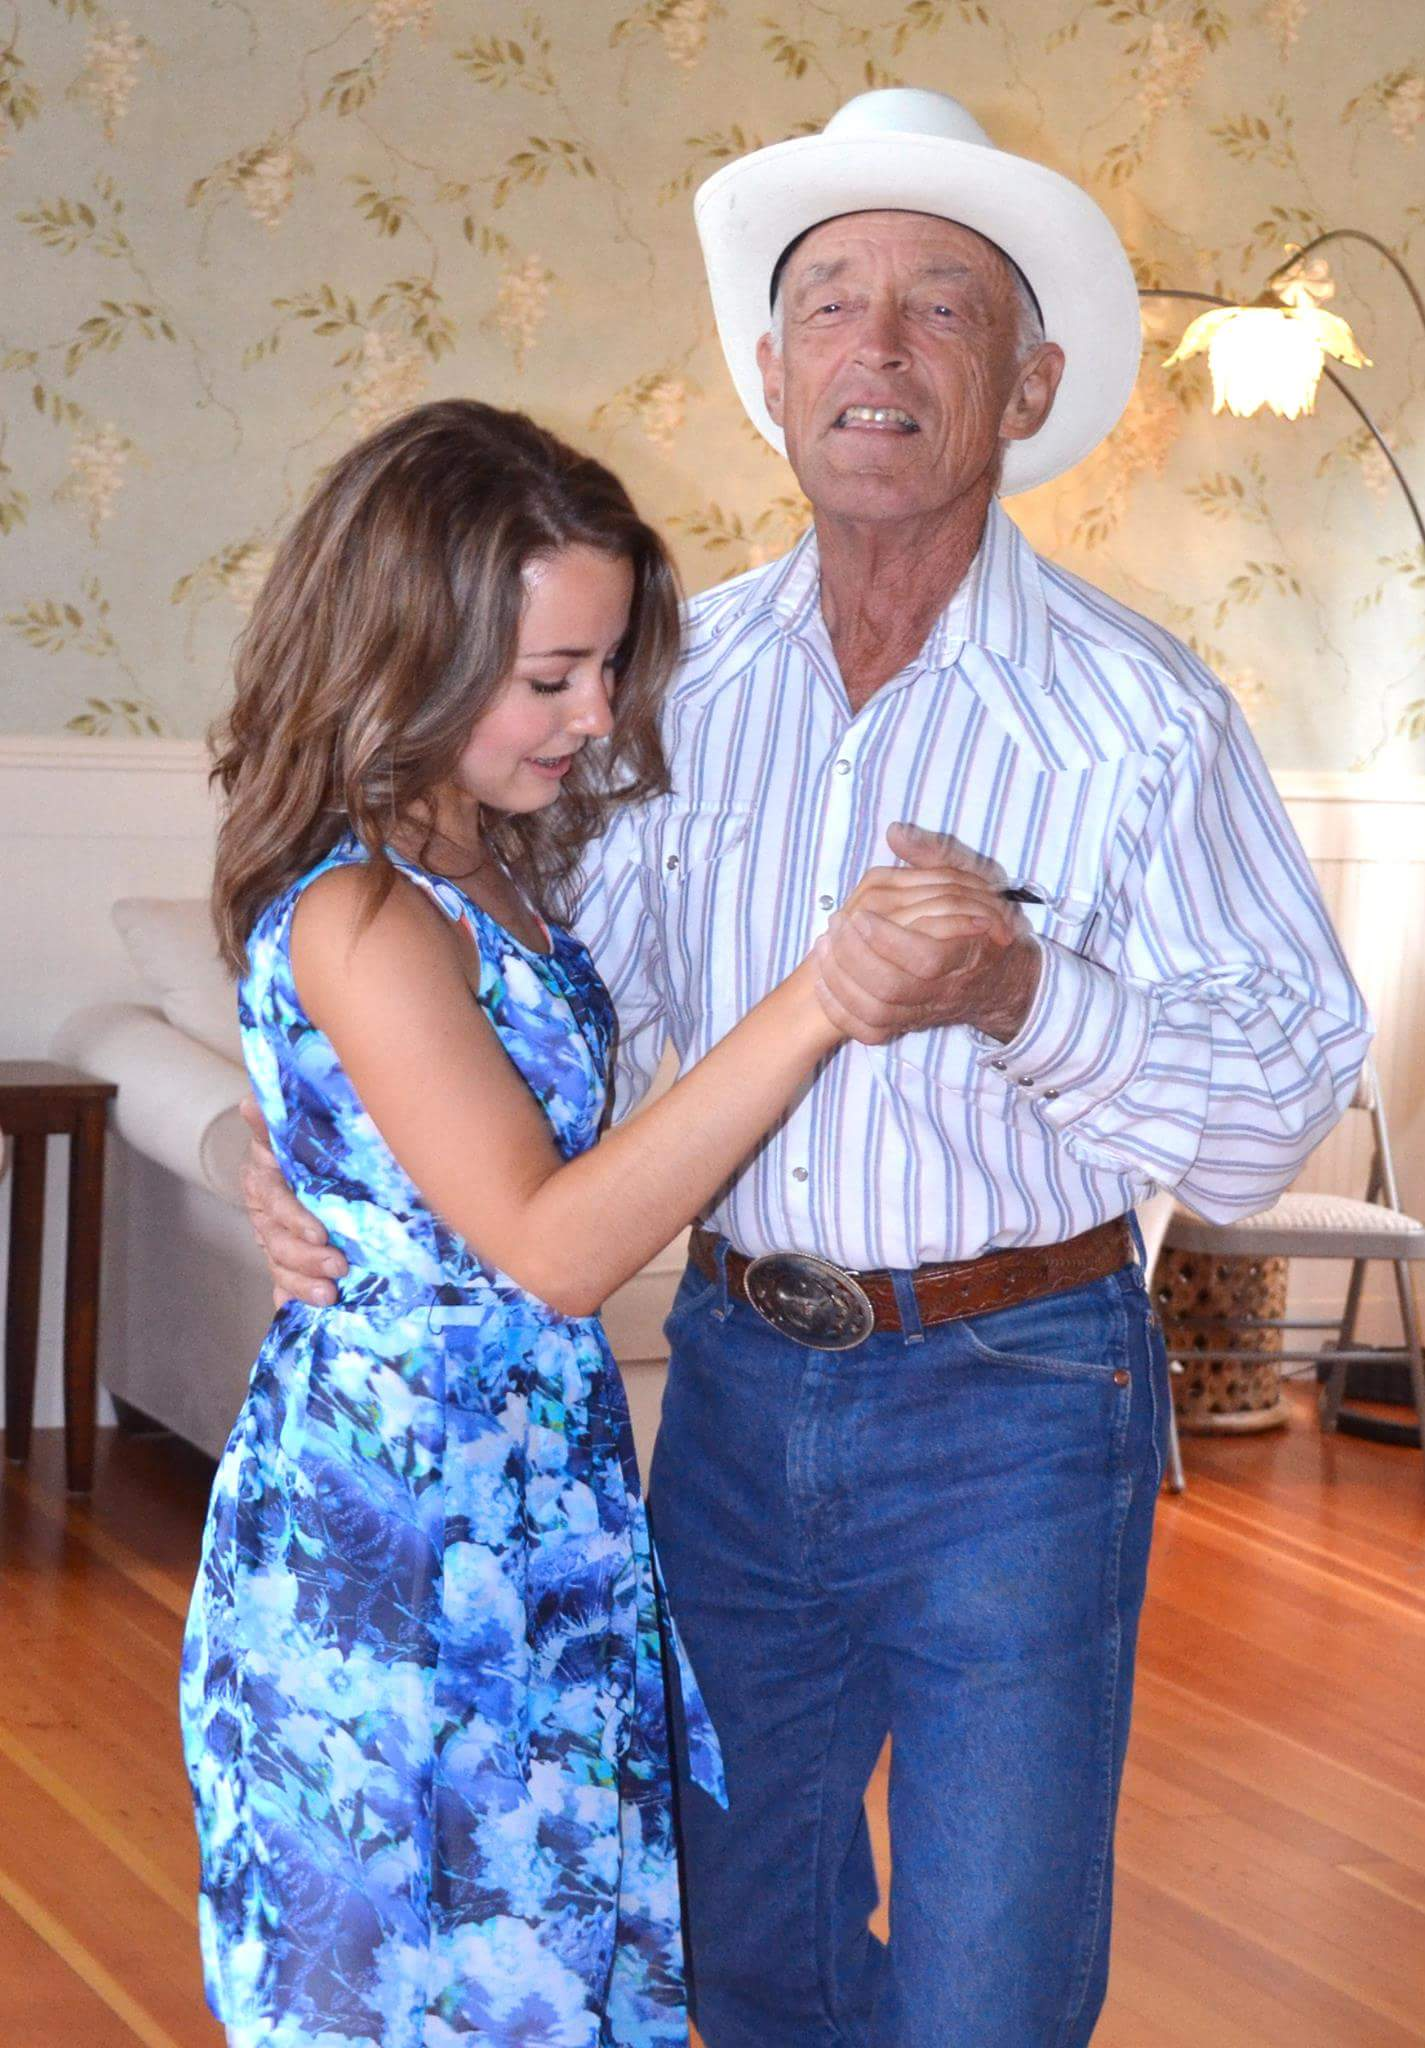 Dancing with Grandpa on my graduation day, June, 2016